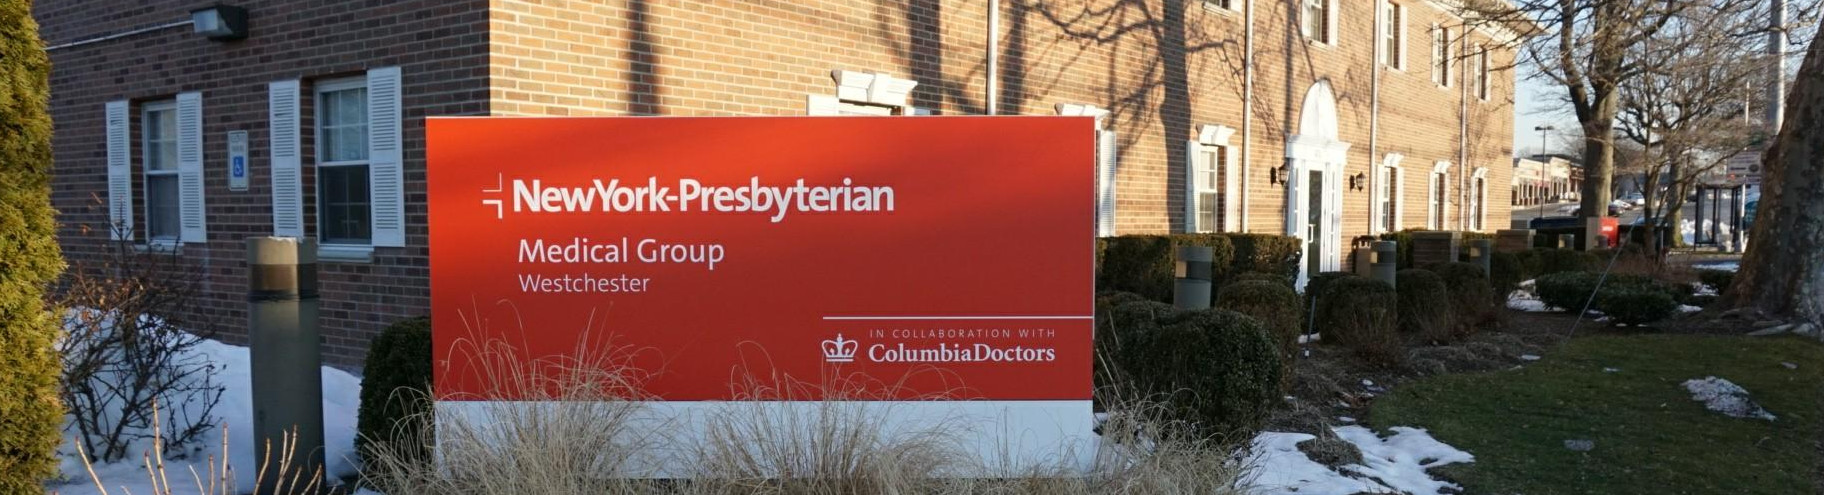 NewYork-Presbyterian Medical Group/Westchester